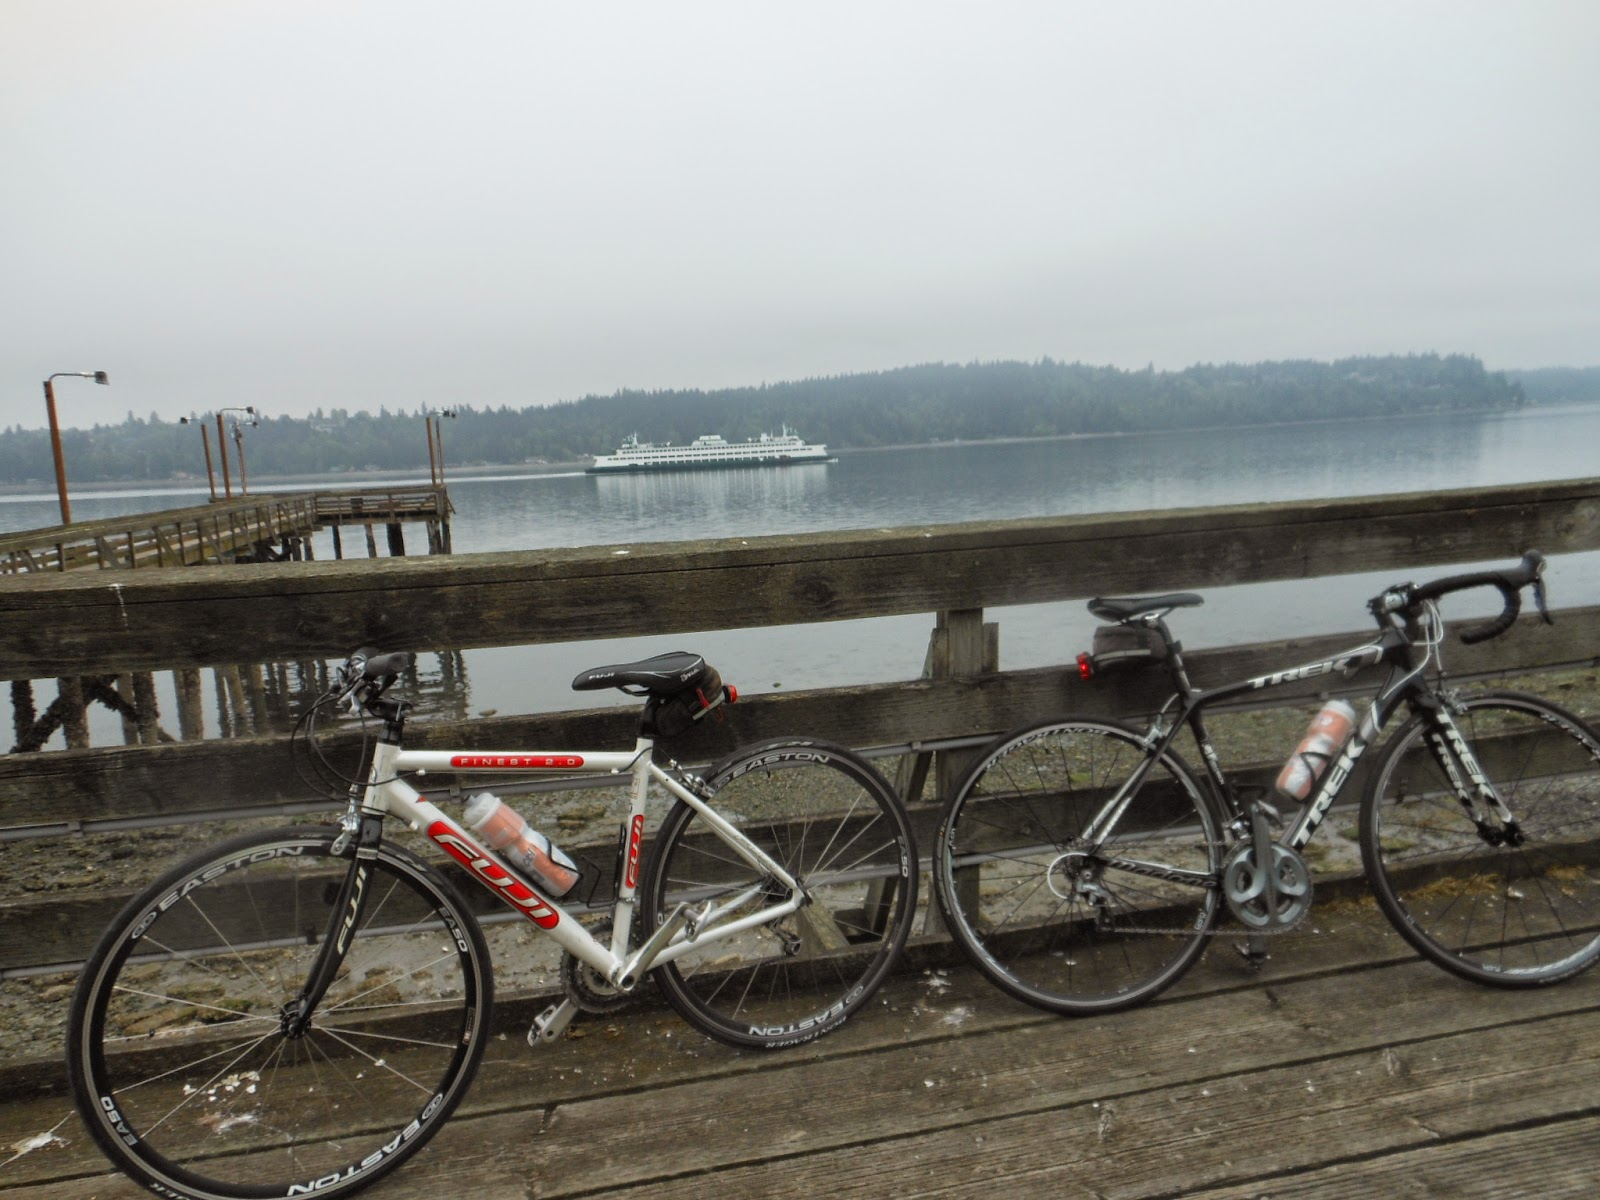 Olympic cycle port orchard -  Port Orchard But It Was Easier To Park In Po We Would Often Pass Cycling Clubs From Seattle That Would Take The Ferry Over And Ride To Bremerton And